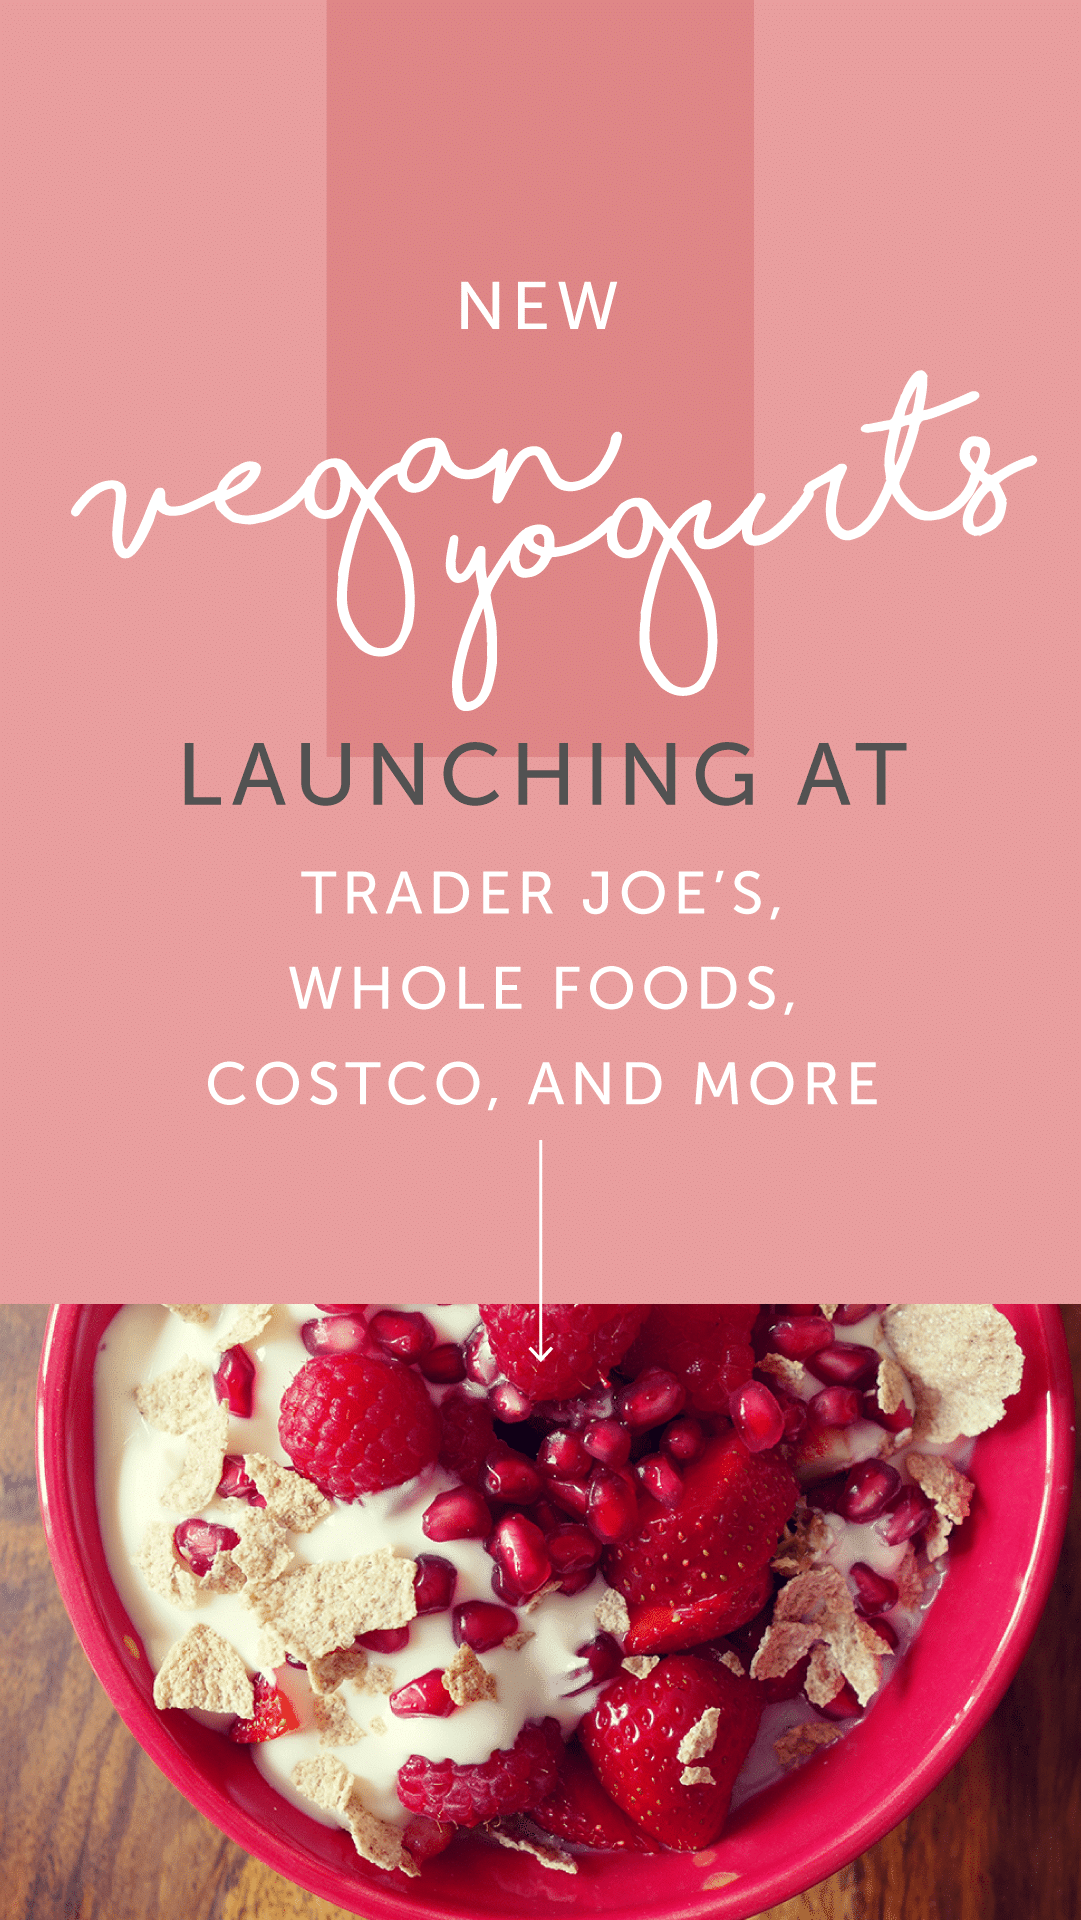 New Vegan Yogurts Launching at Trader Joe's, Whole Foods, Costco, and More